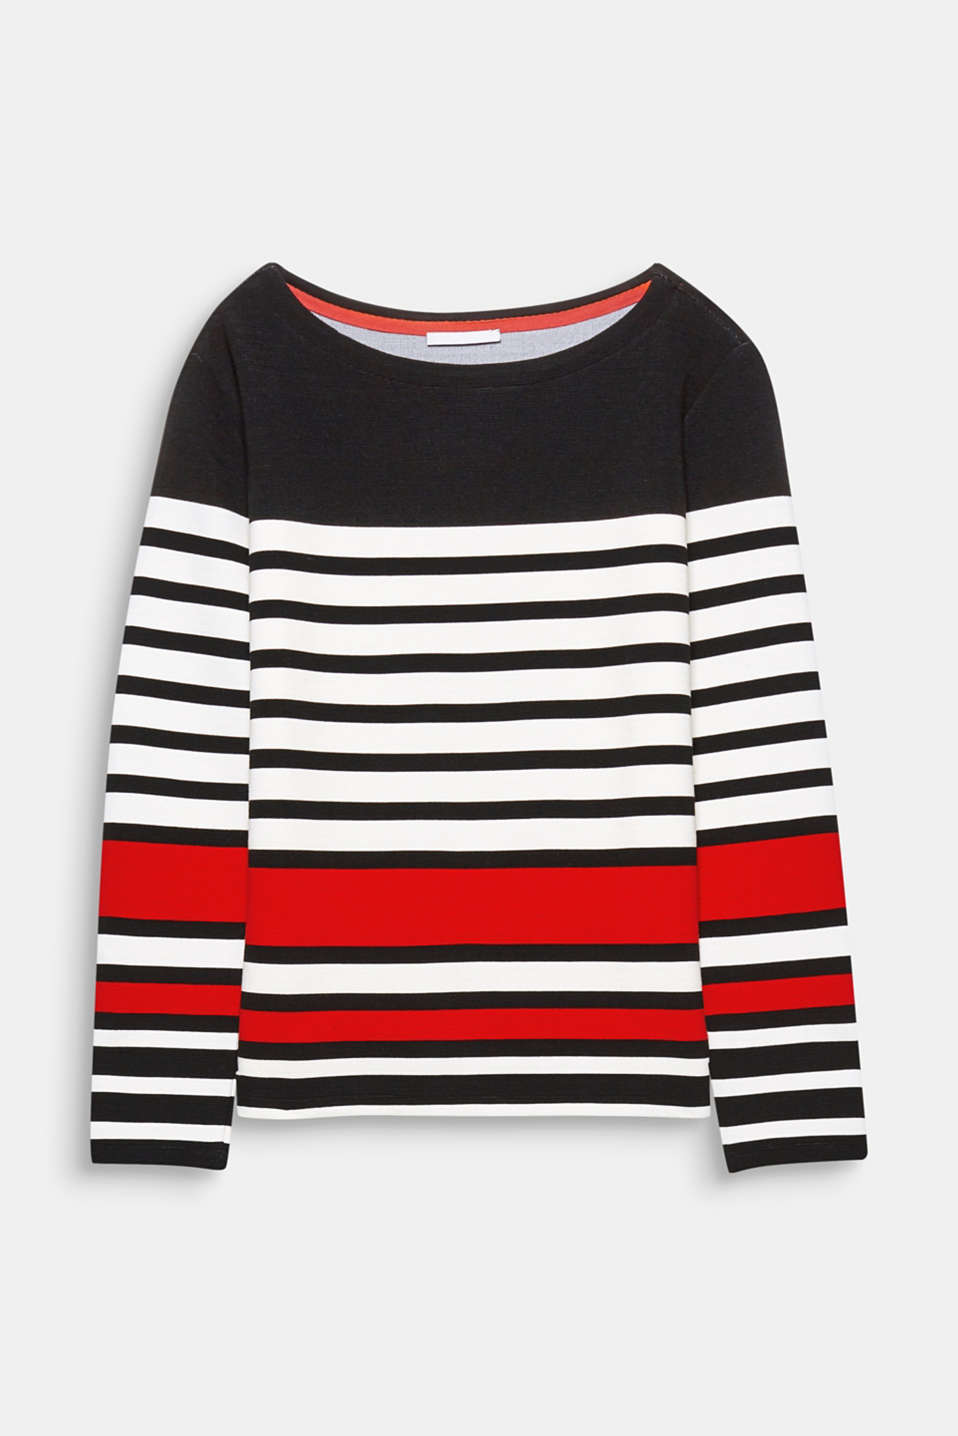 This sweatshirt with graphic stripes, a fine ribbed texture and trendy oversized design has a fresh, cool look!